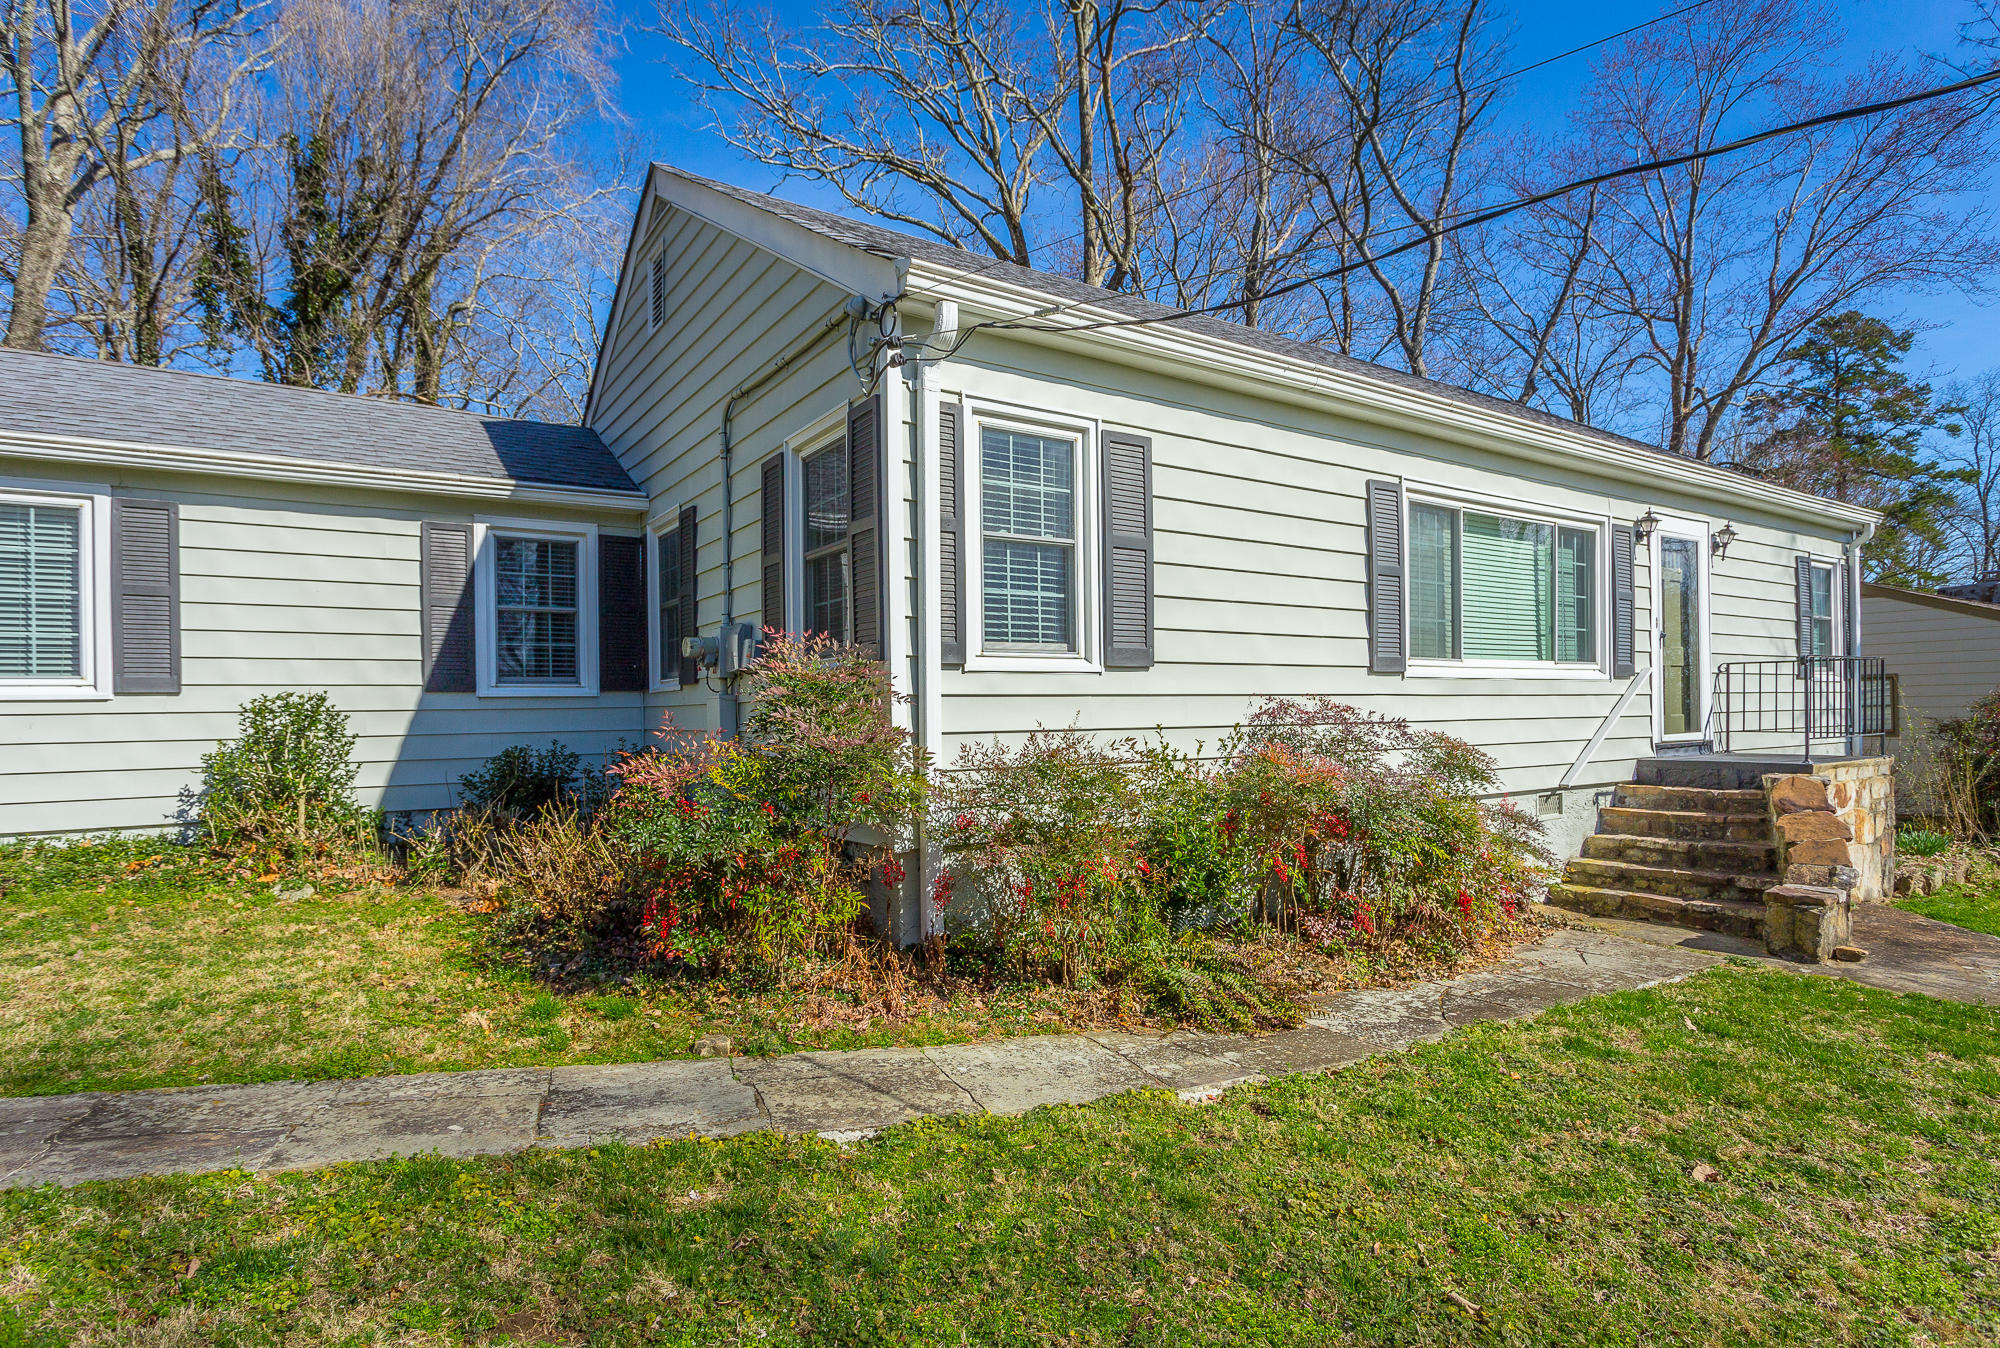 213 Pied Piper Tr, Lookout Mountain, GA 30750